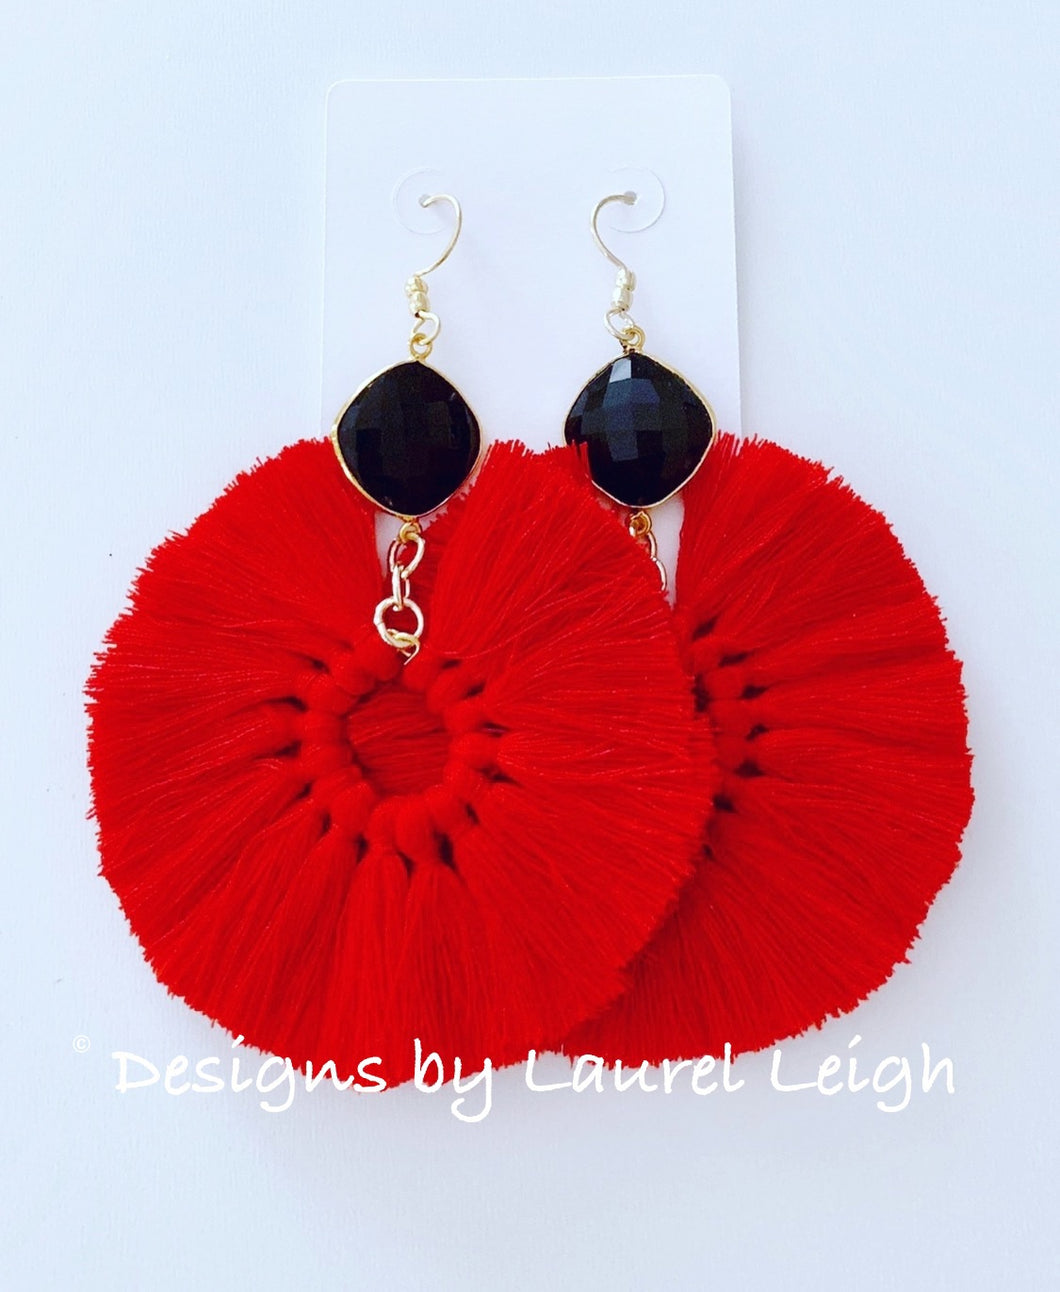 Gemstone Fan Tassel Earrings - Red & Black Game Day - Ginger jar